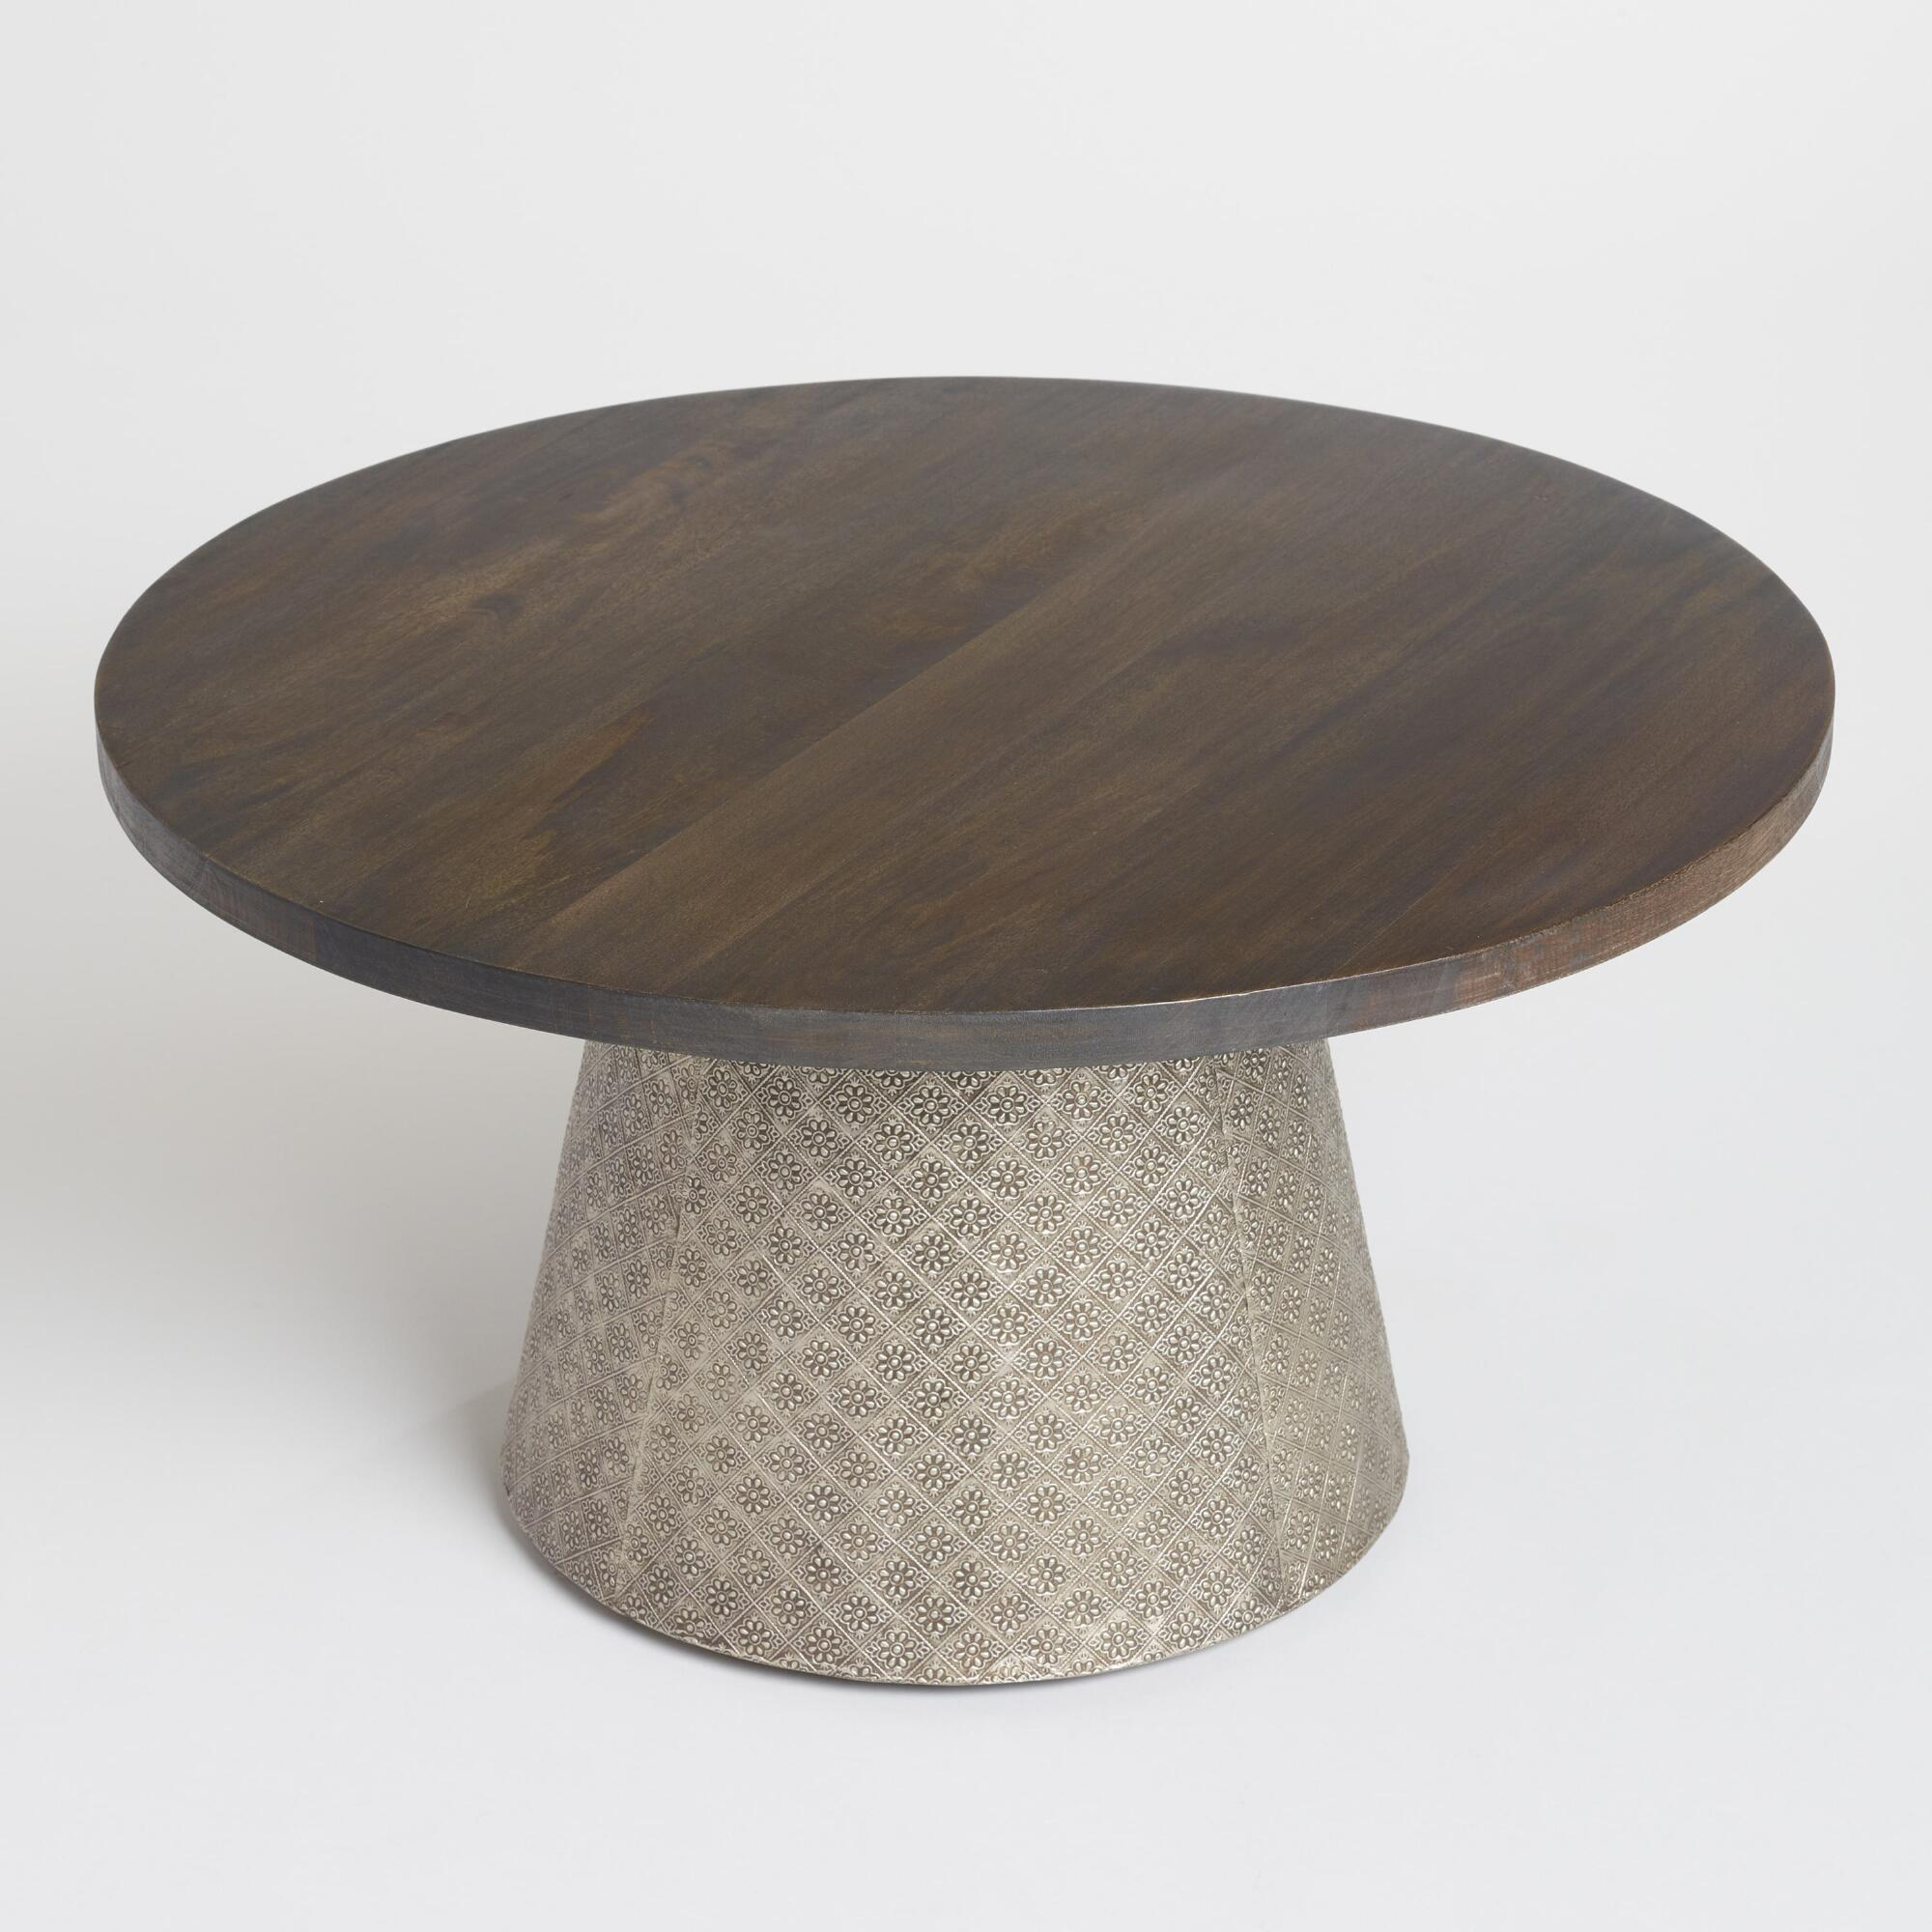 coffee tables end accent world market iipsrv fcgi table round wood and embossed metal kiran marble gold real kitchen trolley kmart white kohls lamps rustic dining nightstand with